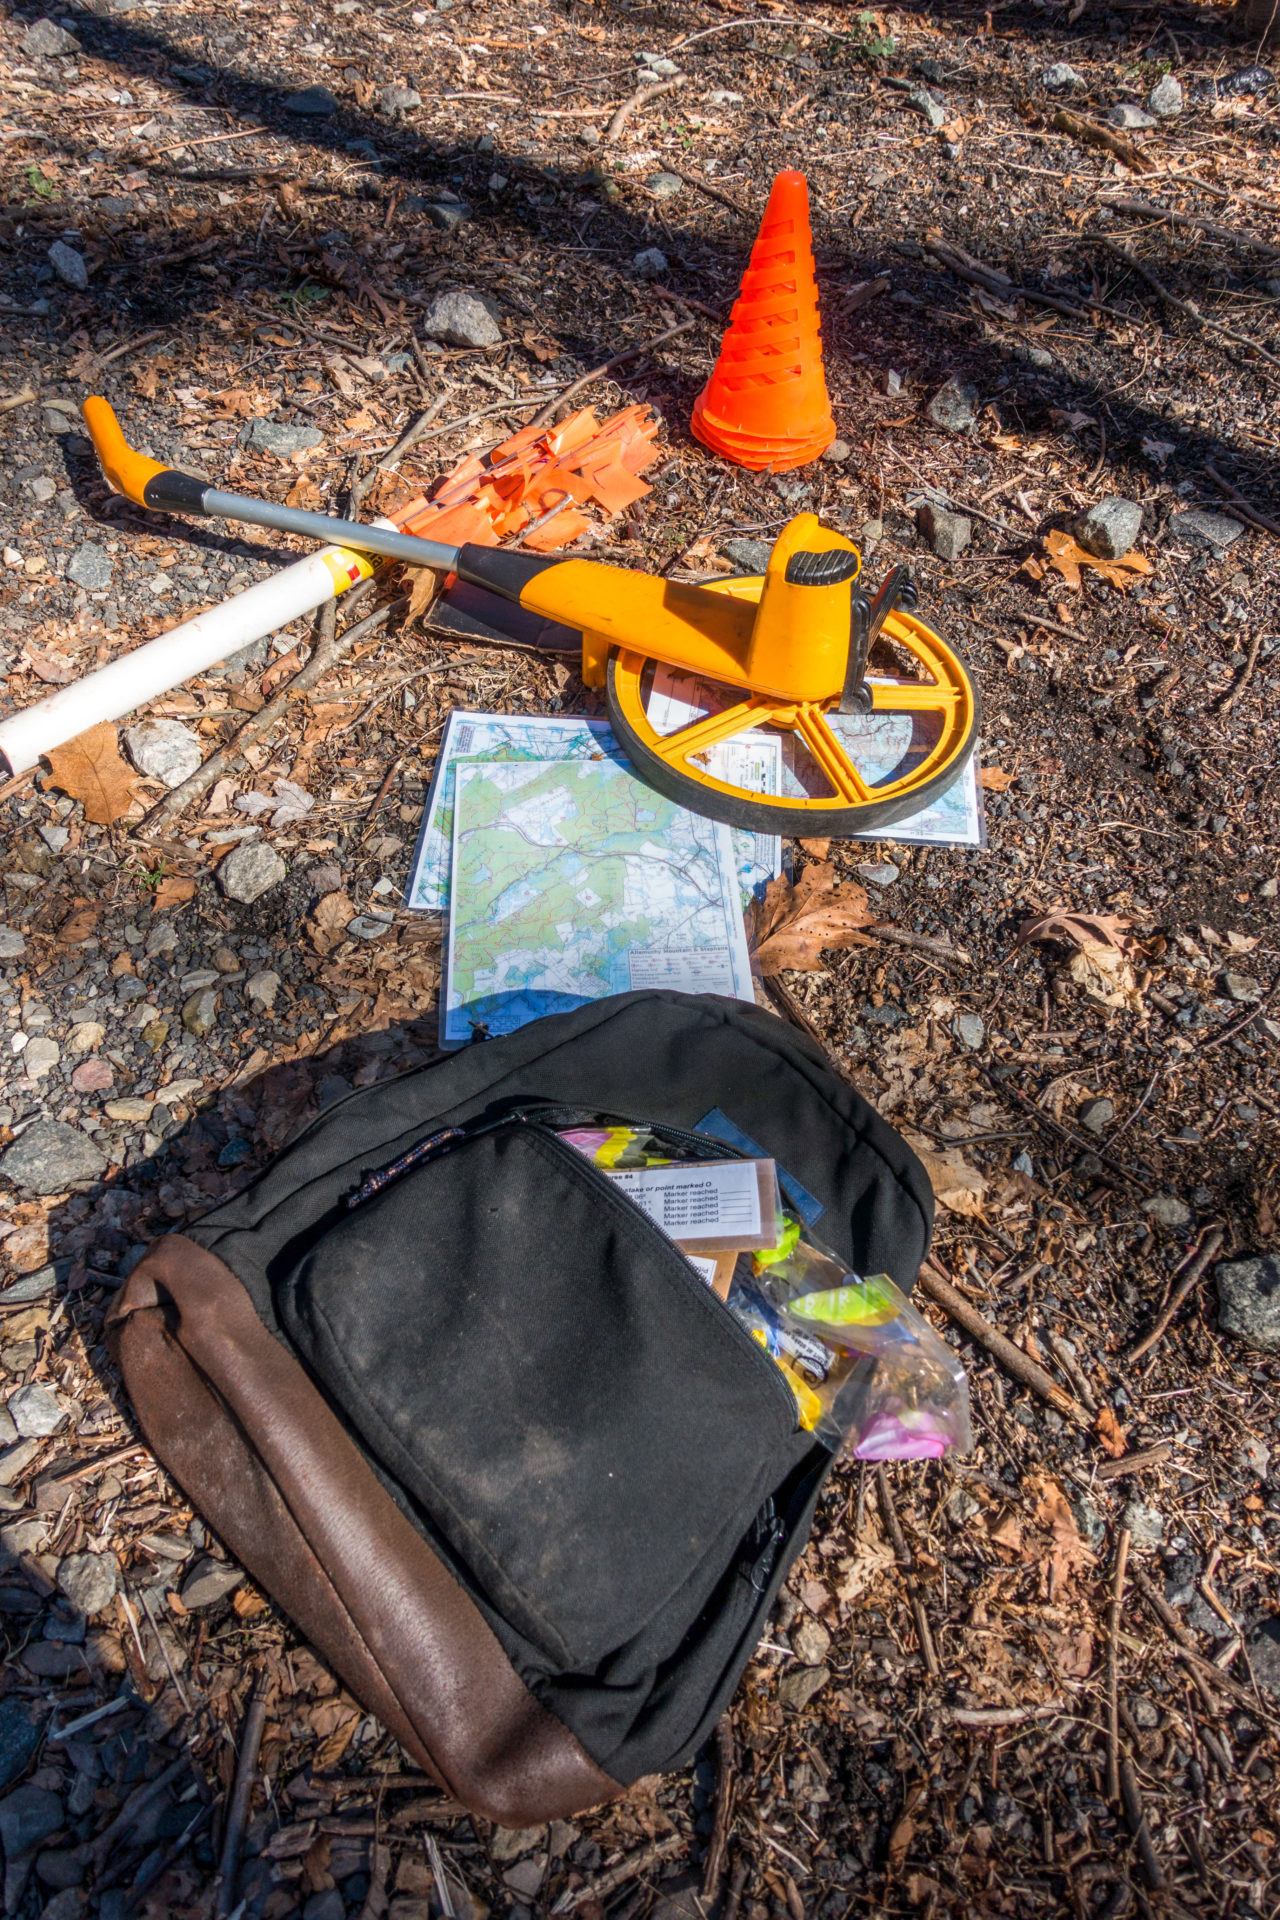 John's setup gear for our first wilderness navigation lesson.